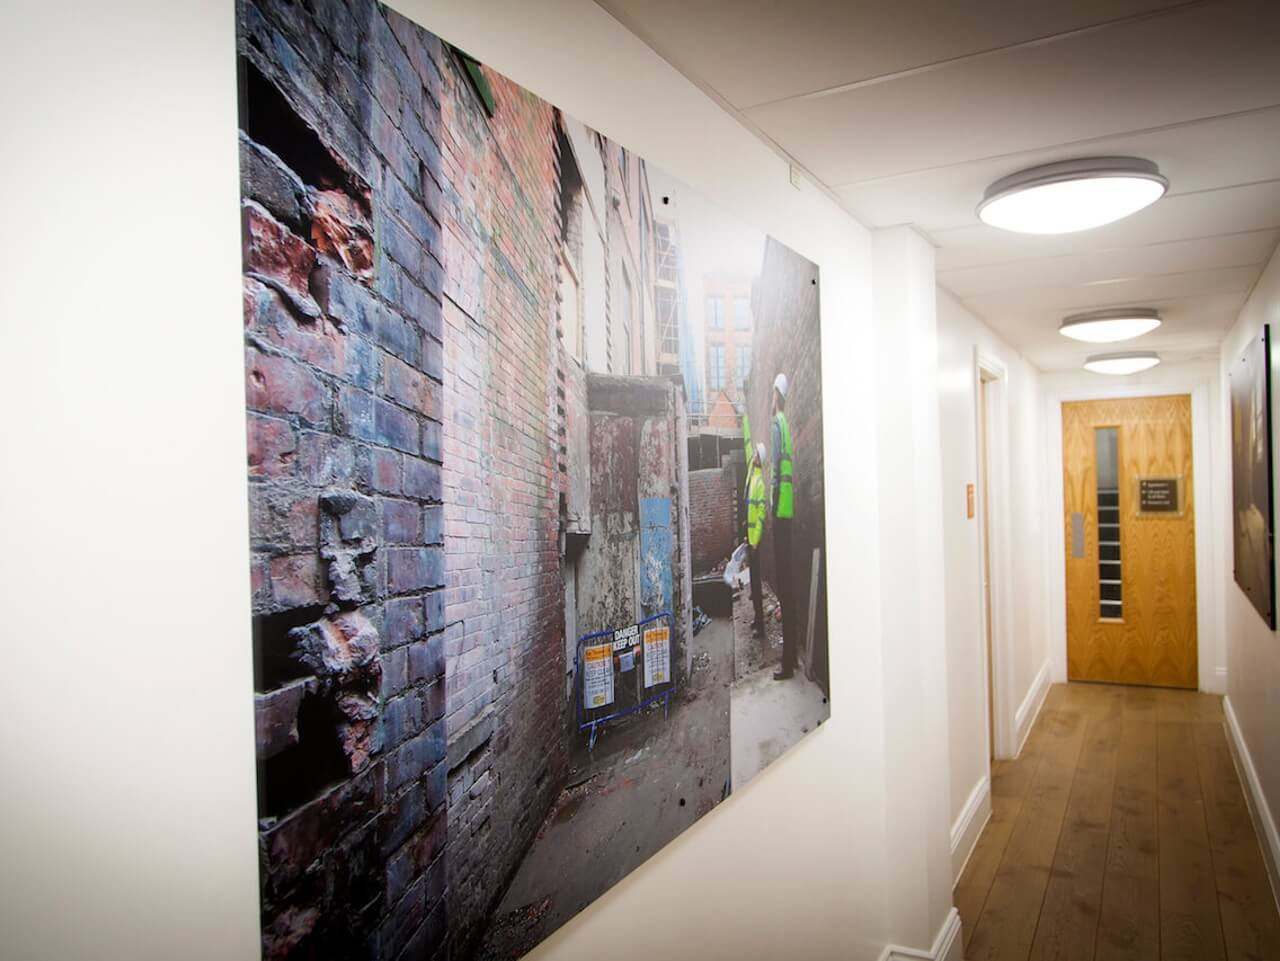 A corridor in the Bruce Building with artwork on the wall